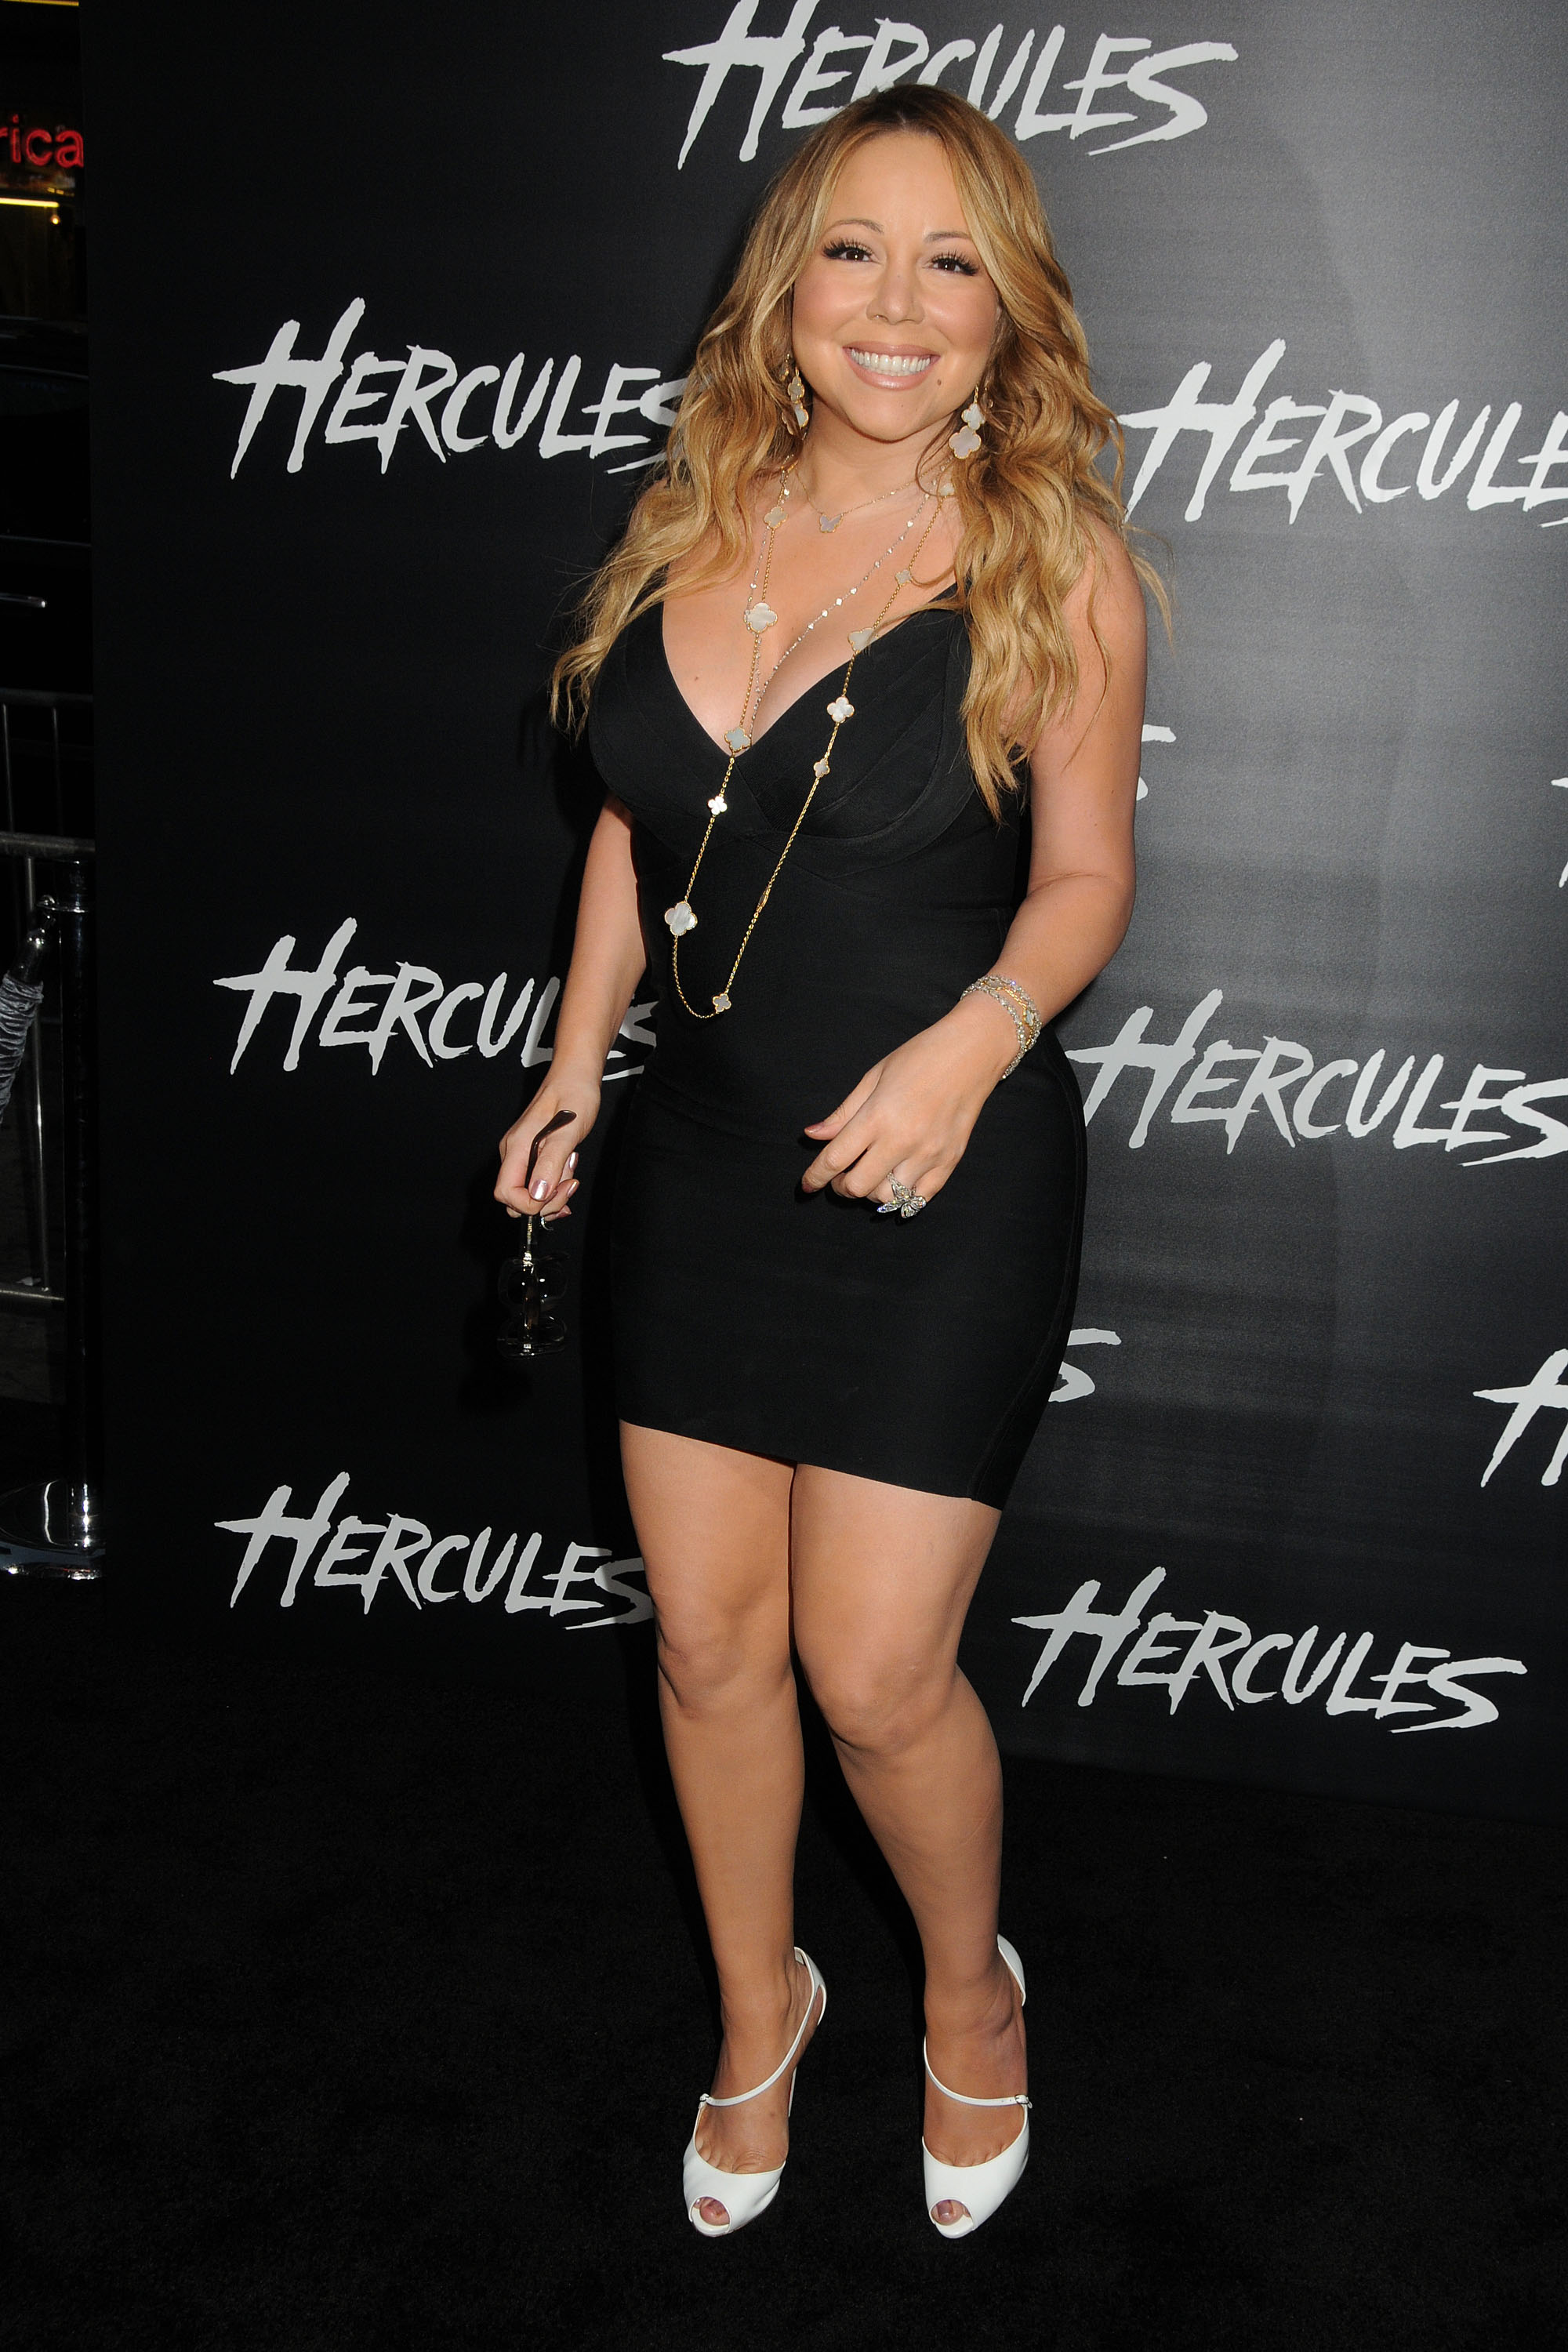 ADM_HERCULES_BP_79 - Mariah Carey at the 'Hercules' Los Angeles premiere held at the TCL Chinese Theatre on July 23, 2014. Pictured: Mariah Carey Ref: SPL807954  230714   Picture by: AdMedia / Splash News Splash News and Pictures Los Angeles:	310-821-2666 New York:	212-619-2666 London:	870-934-2666 photodesk@splashnews.com